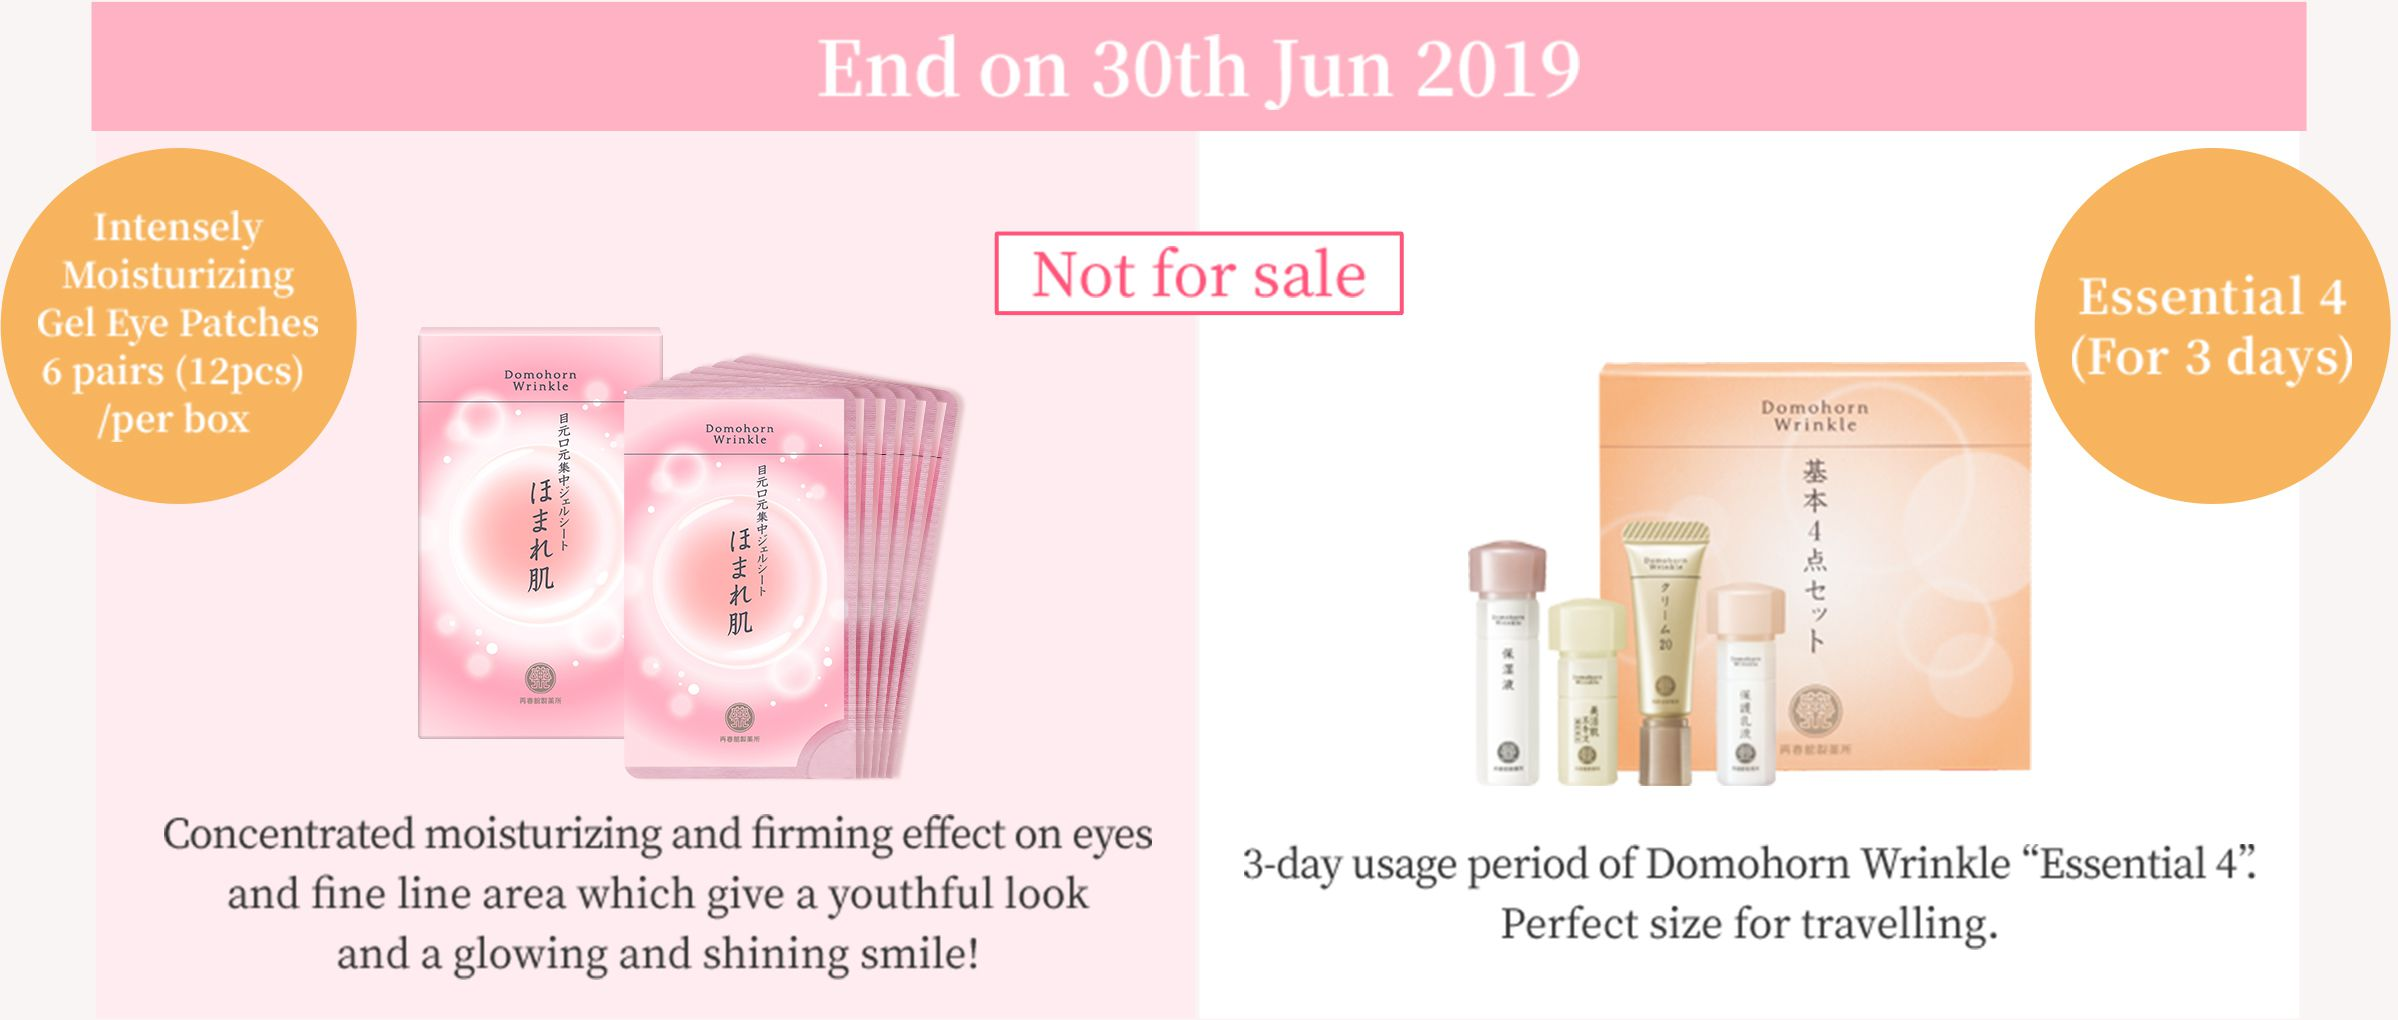 """End on 30th Jun 2019 Not for sale Intensely Moisturizing Gel Eye Patches 6 pairs (12pcs) /per box Concentrated moisturizing and firming effect on eyes and fine line area which give a youthful look and a glowing and shining smile! Essential 4 (For 3 days) 3-day usage period of Domohorn Wrinkle """"Essential 4"""". Perfect size for travelling."""